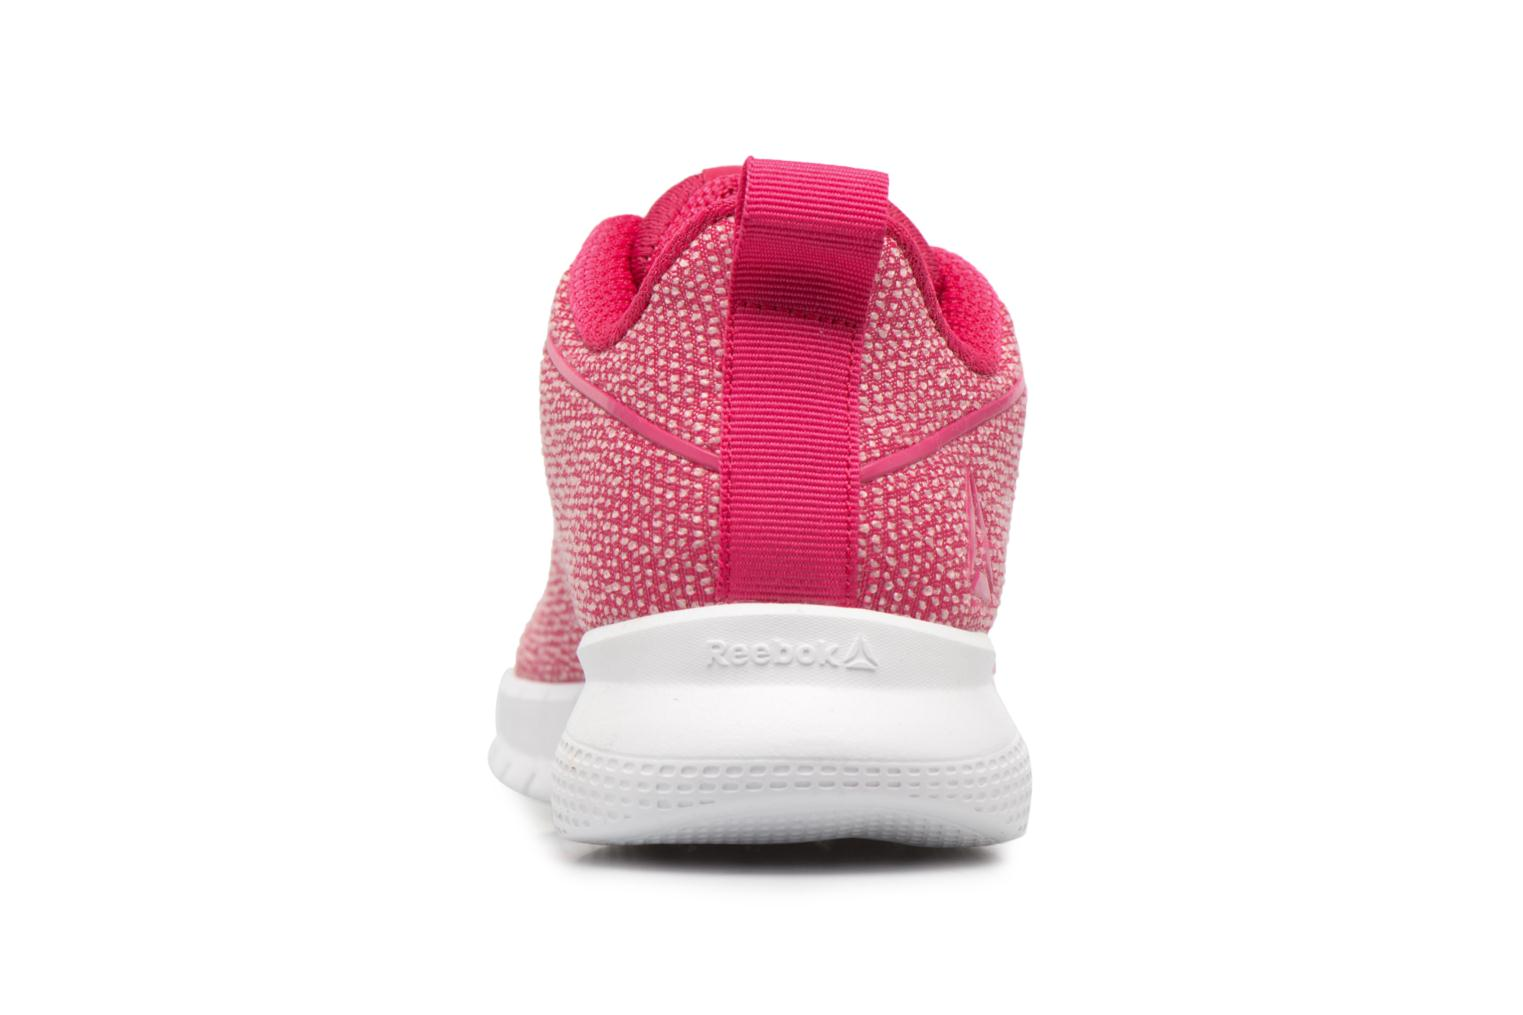 Reebok Instalite Pro Overtly Pink/Squad Pink/White